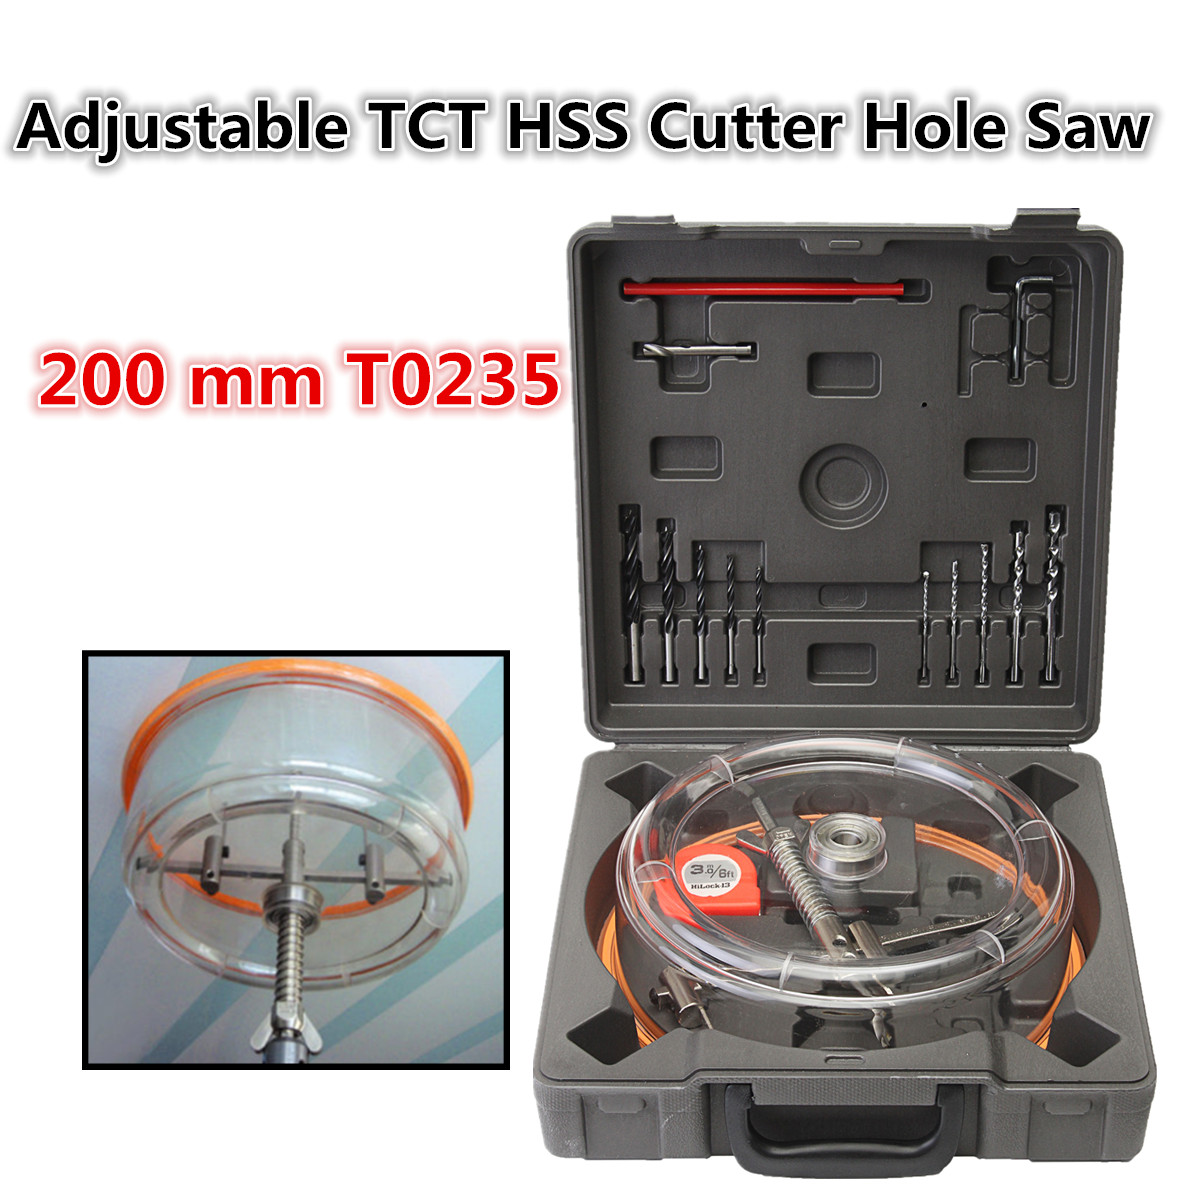 Ceiling Woodworking Drill Bit Adjustable Downlight Holesaw Ceiling Wall TCT HSS Cutter Hole Saw 200 Mm T0235 With Dust Cover